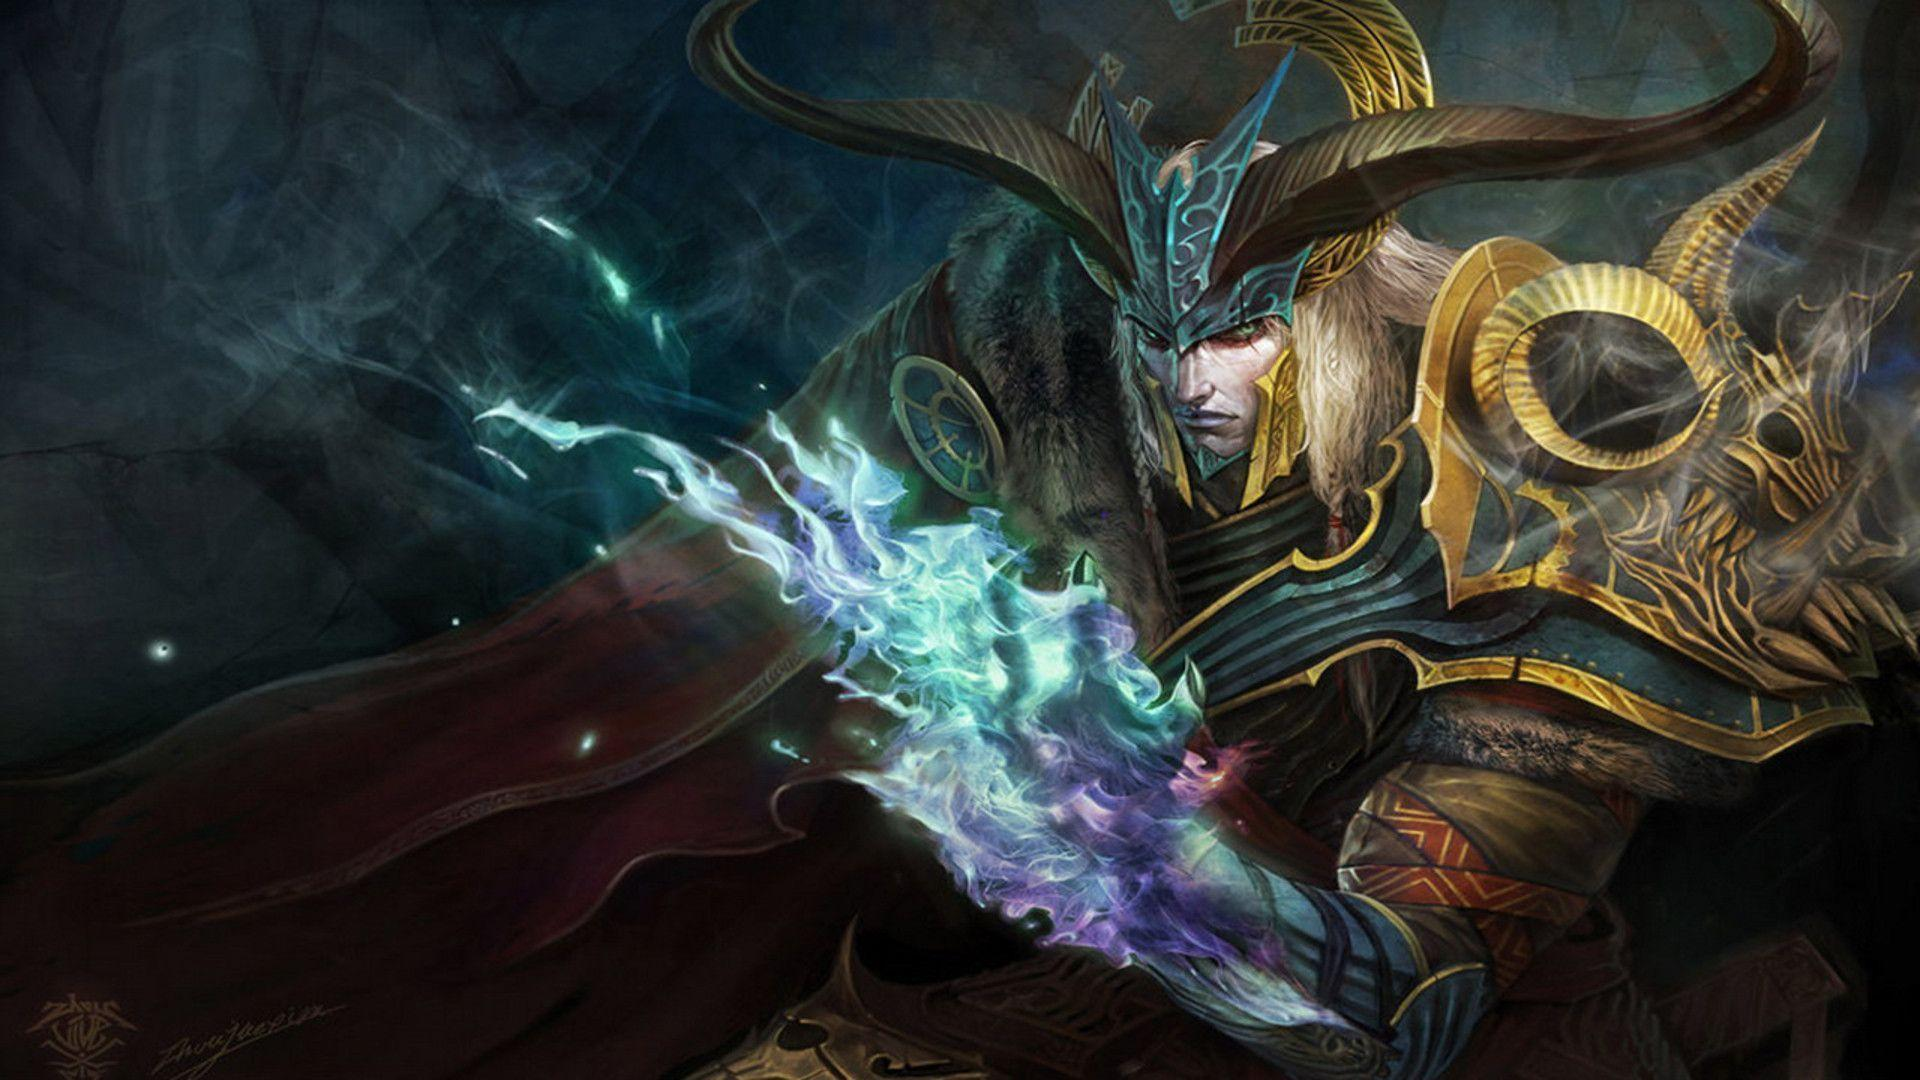 World Of Warcraft Backgrounds 1920x1080: Druid Wallpapers